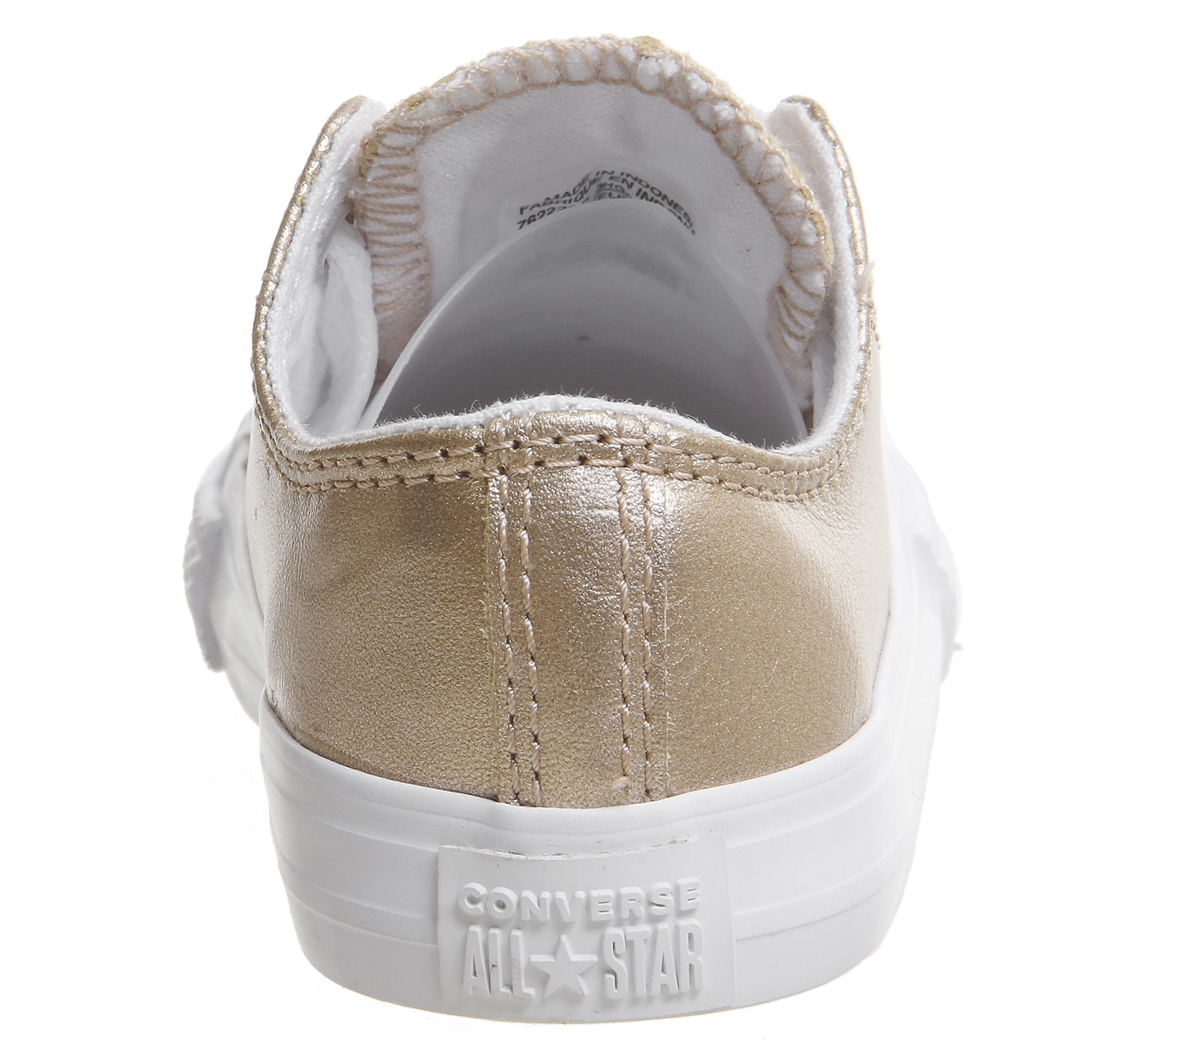 7c9002dbec071e Kids Converse All Star Ox Leather Infant Rose Gold Metallic ...